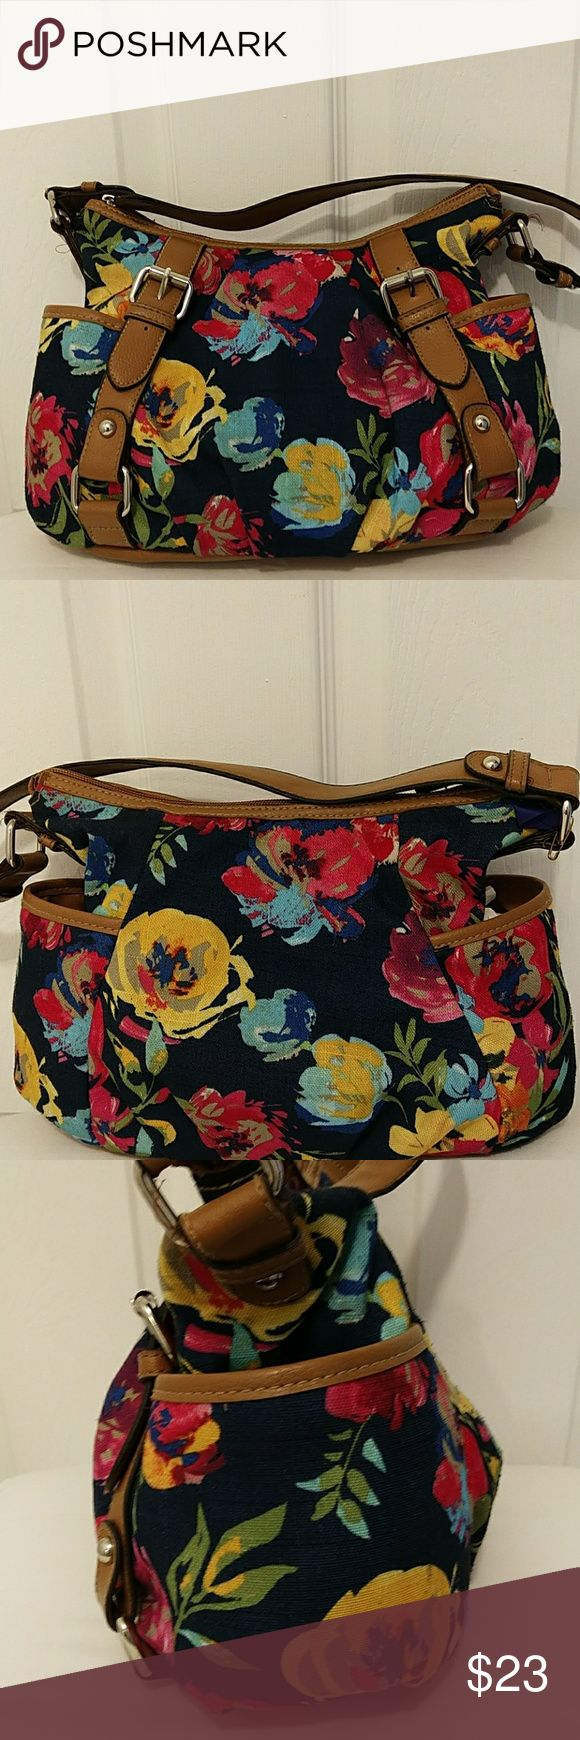 """Floral shoulder bag Very good condition ,colors blue,red, pink, green,no stains no rips, there are some ink spots inside, zipp closure 2 zipp pocket 2 pouches inside, measurements 13""""x 8"""" x 5"""" strap drop 9,8"""" croft & barrow Bags Shoulder Bags"""